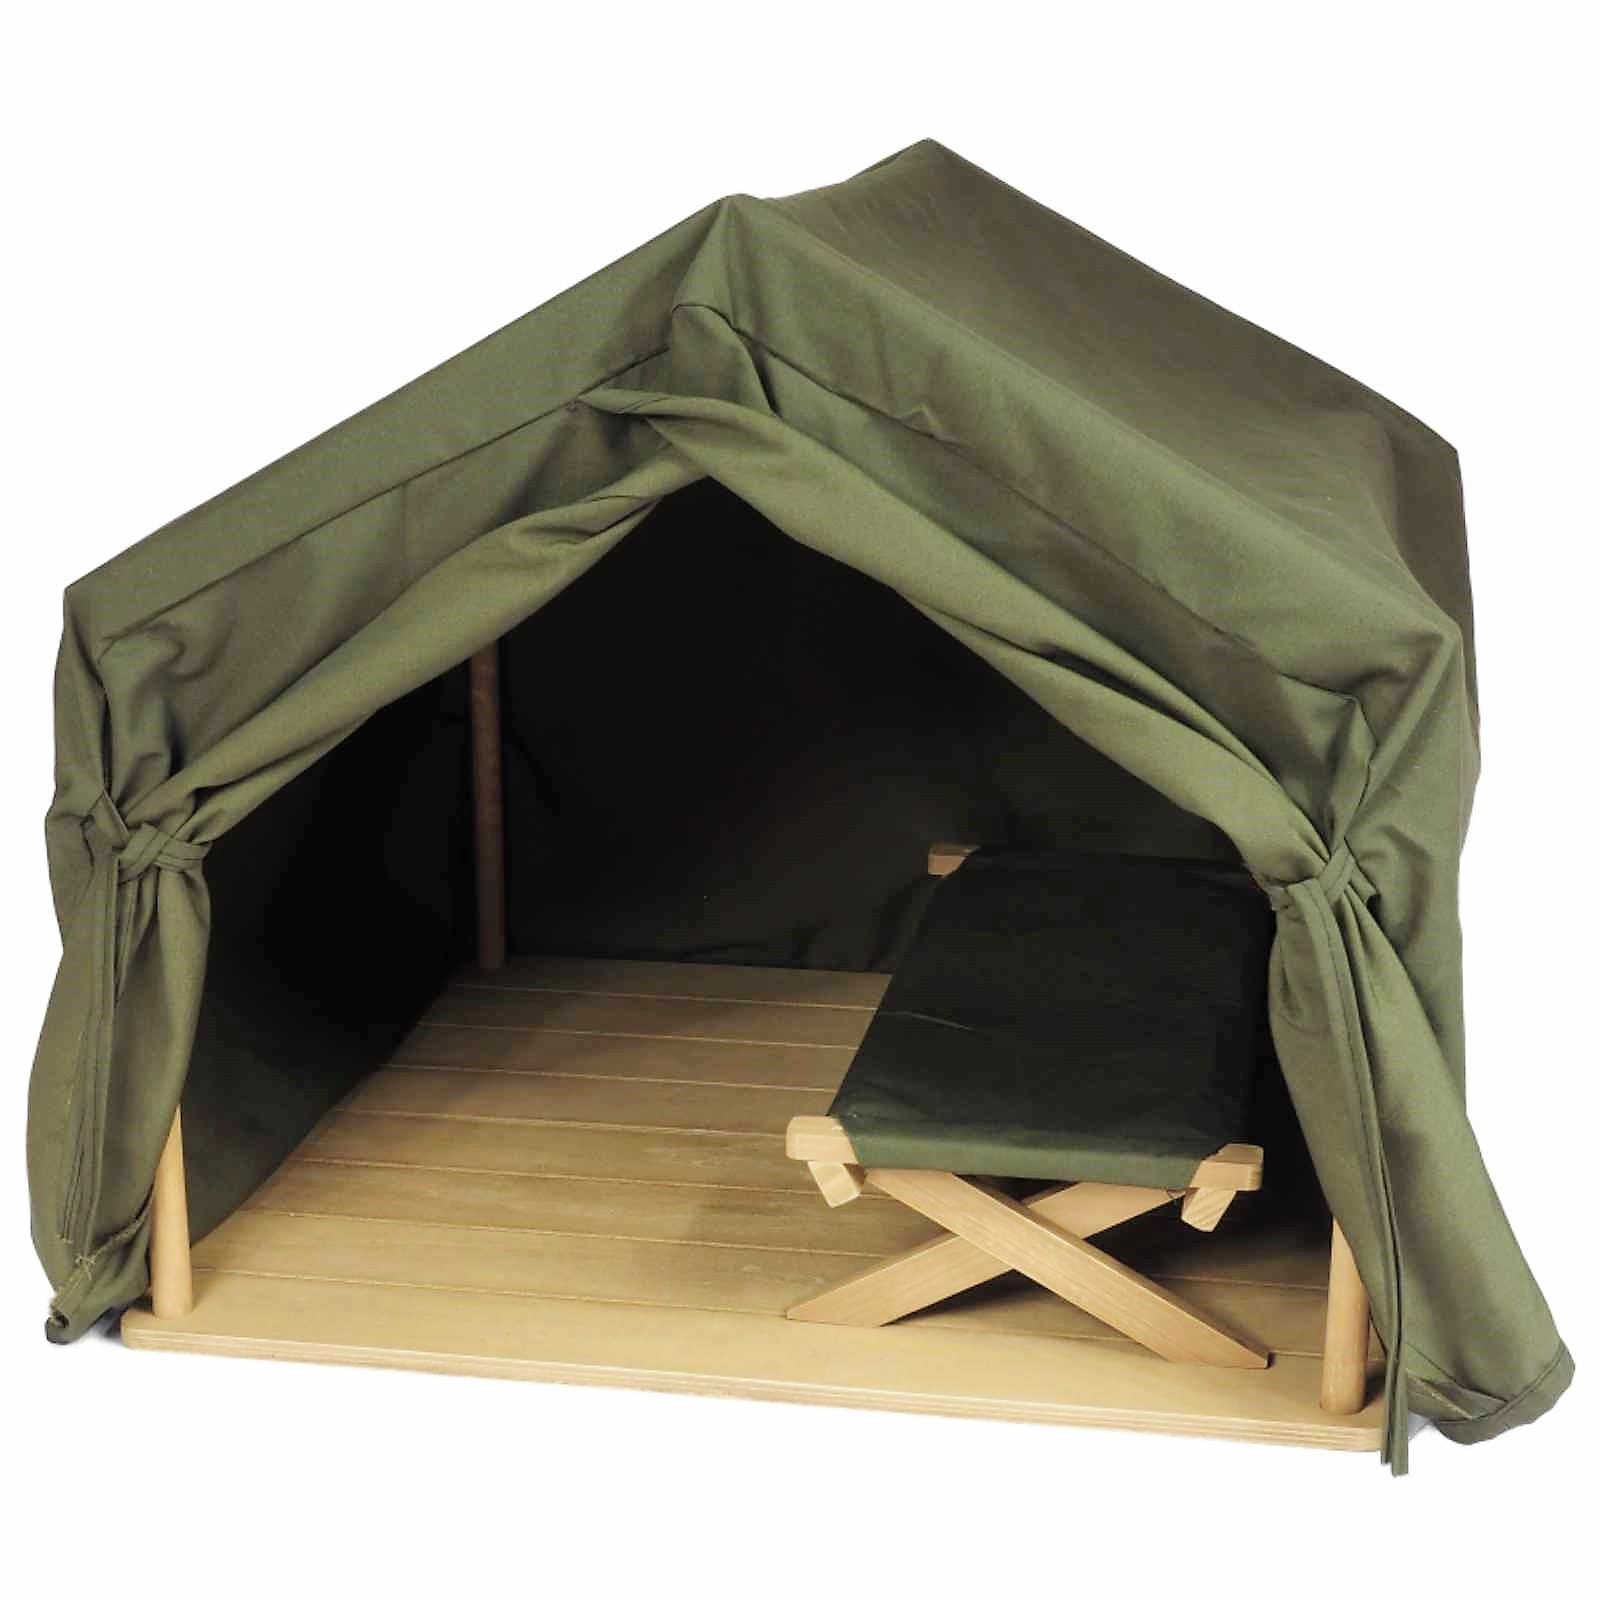 18 Inch Doll Furniture Dr. Goodall Inspired Gombe Research Camping Tent And Cot